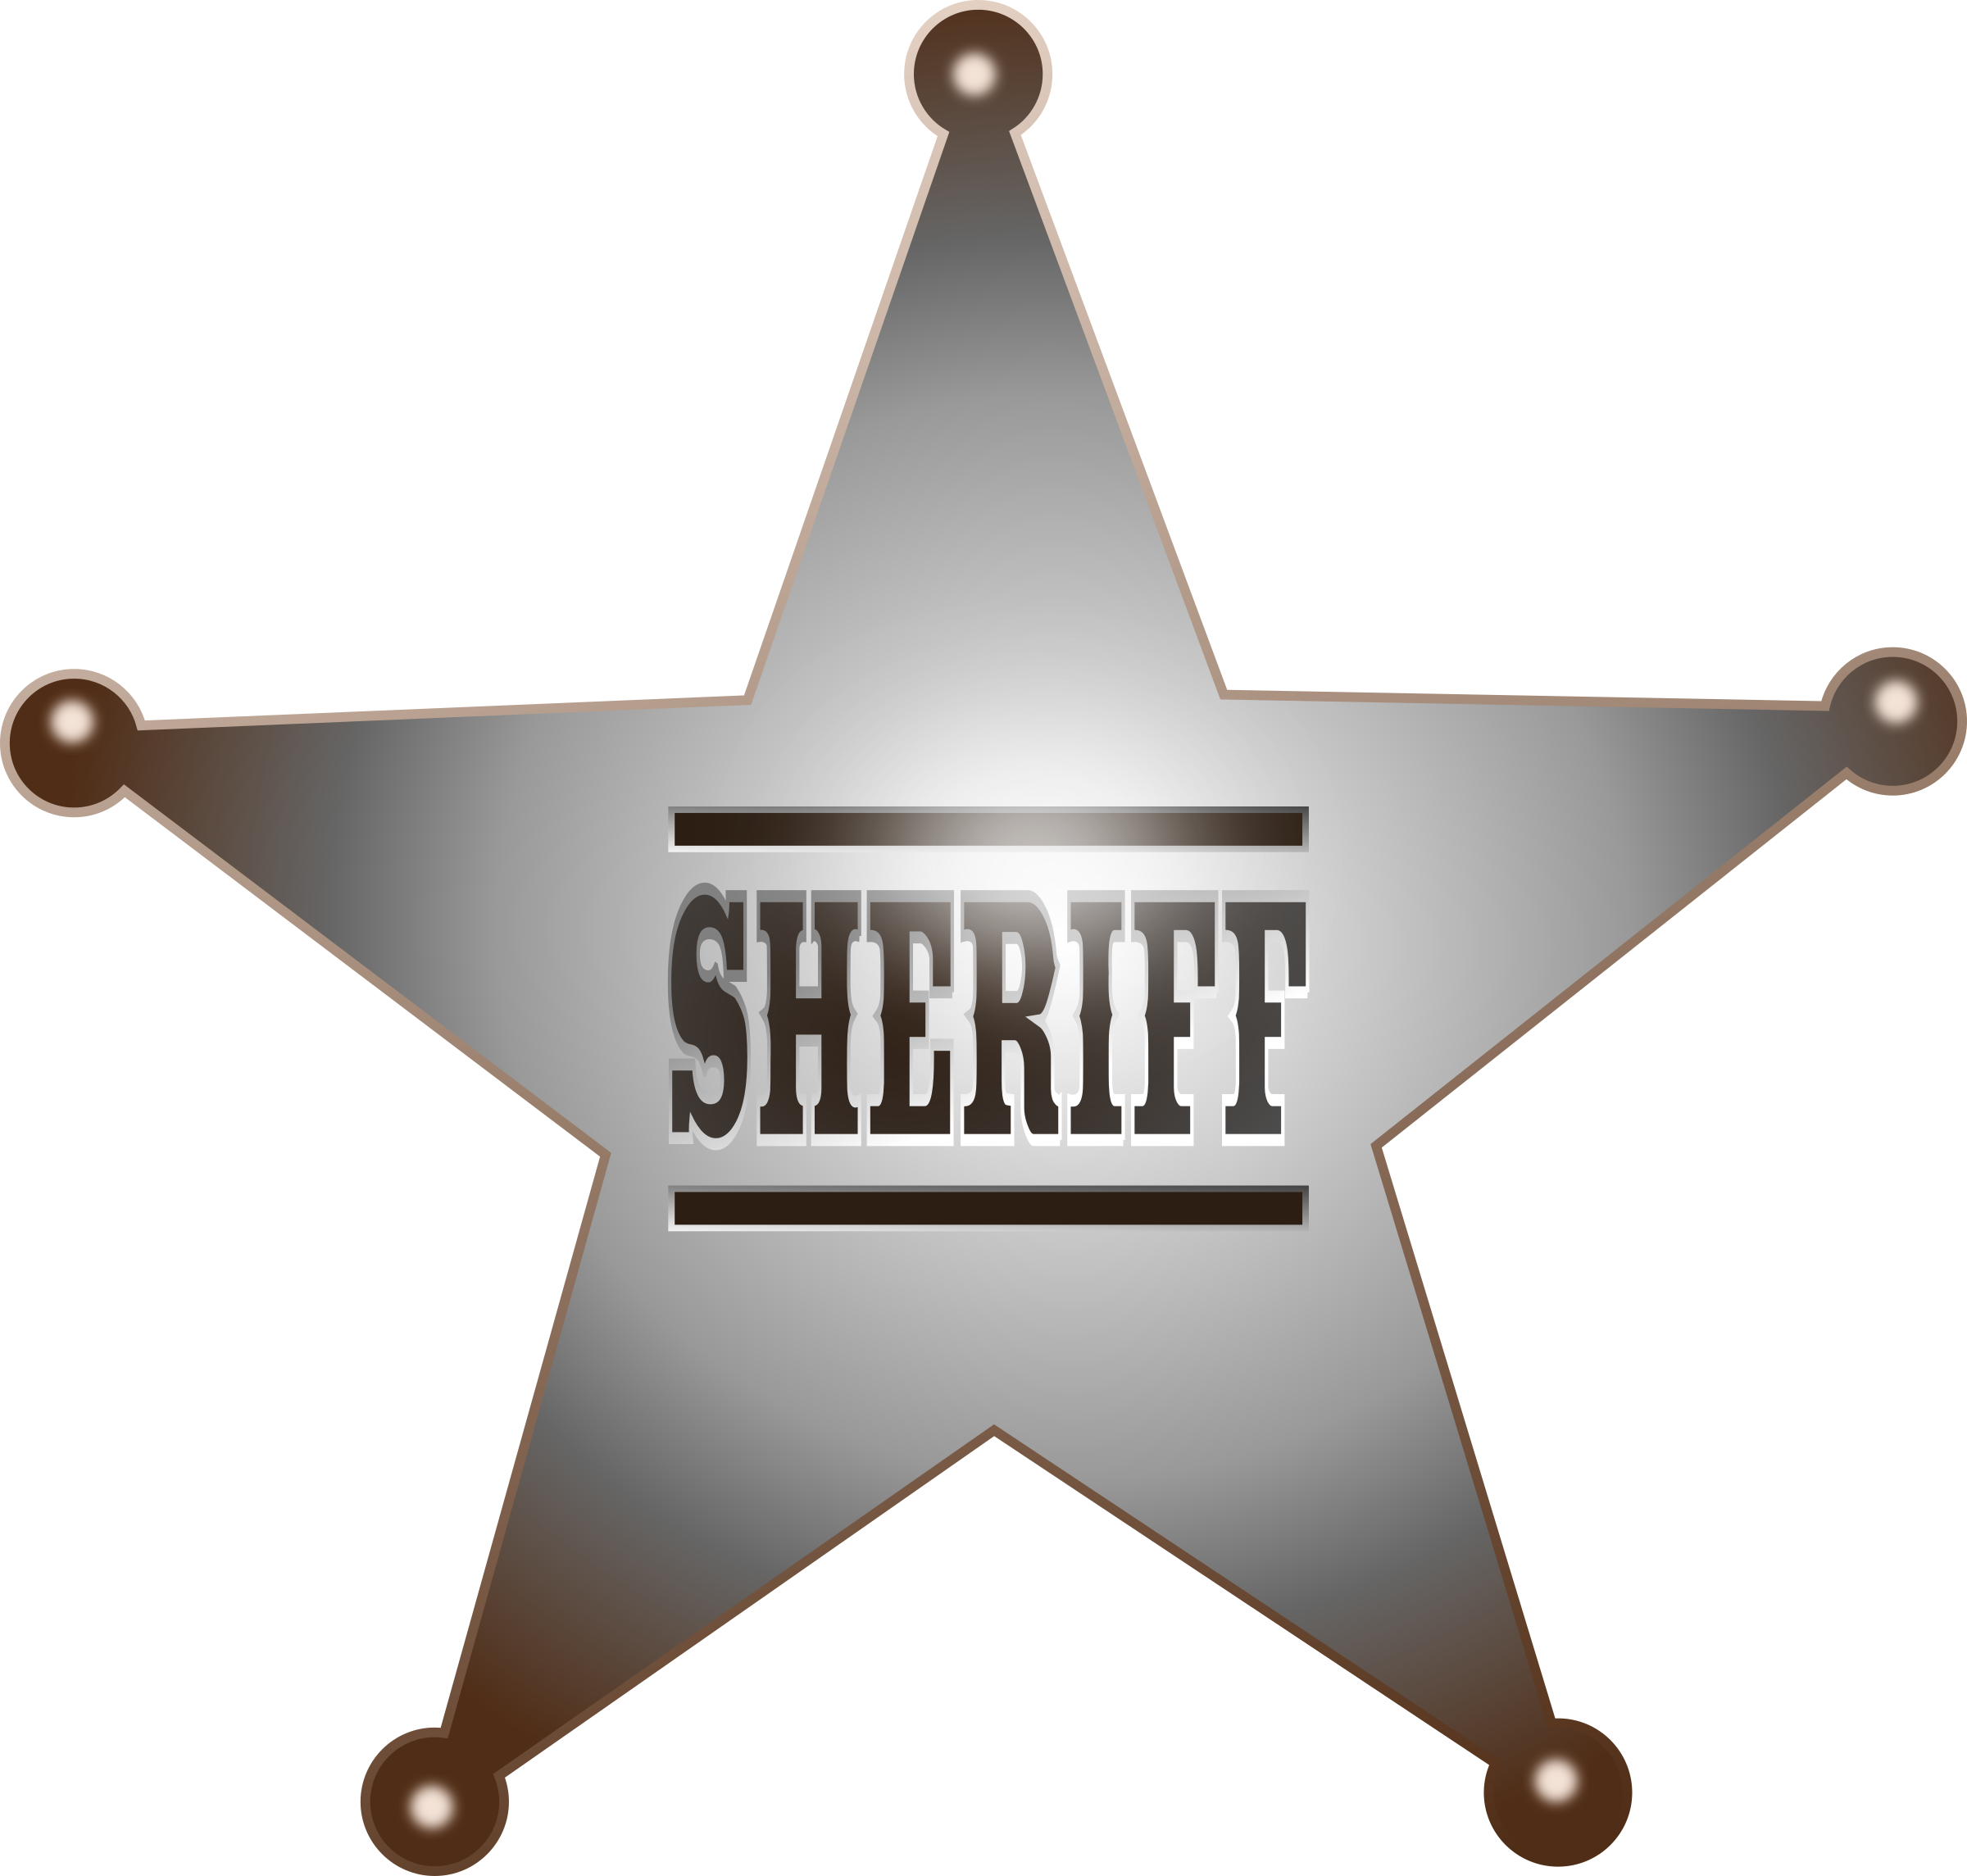 clip art transparent library Star big image png. Sheriff clipart.